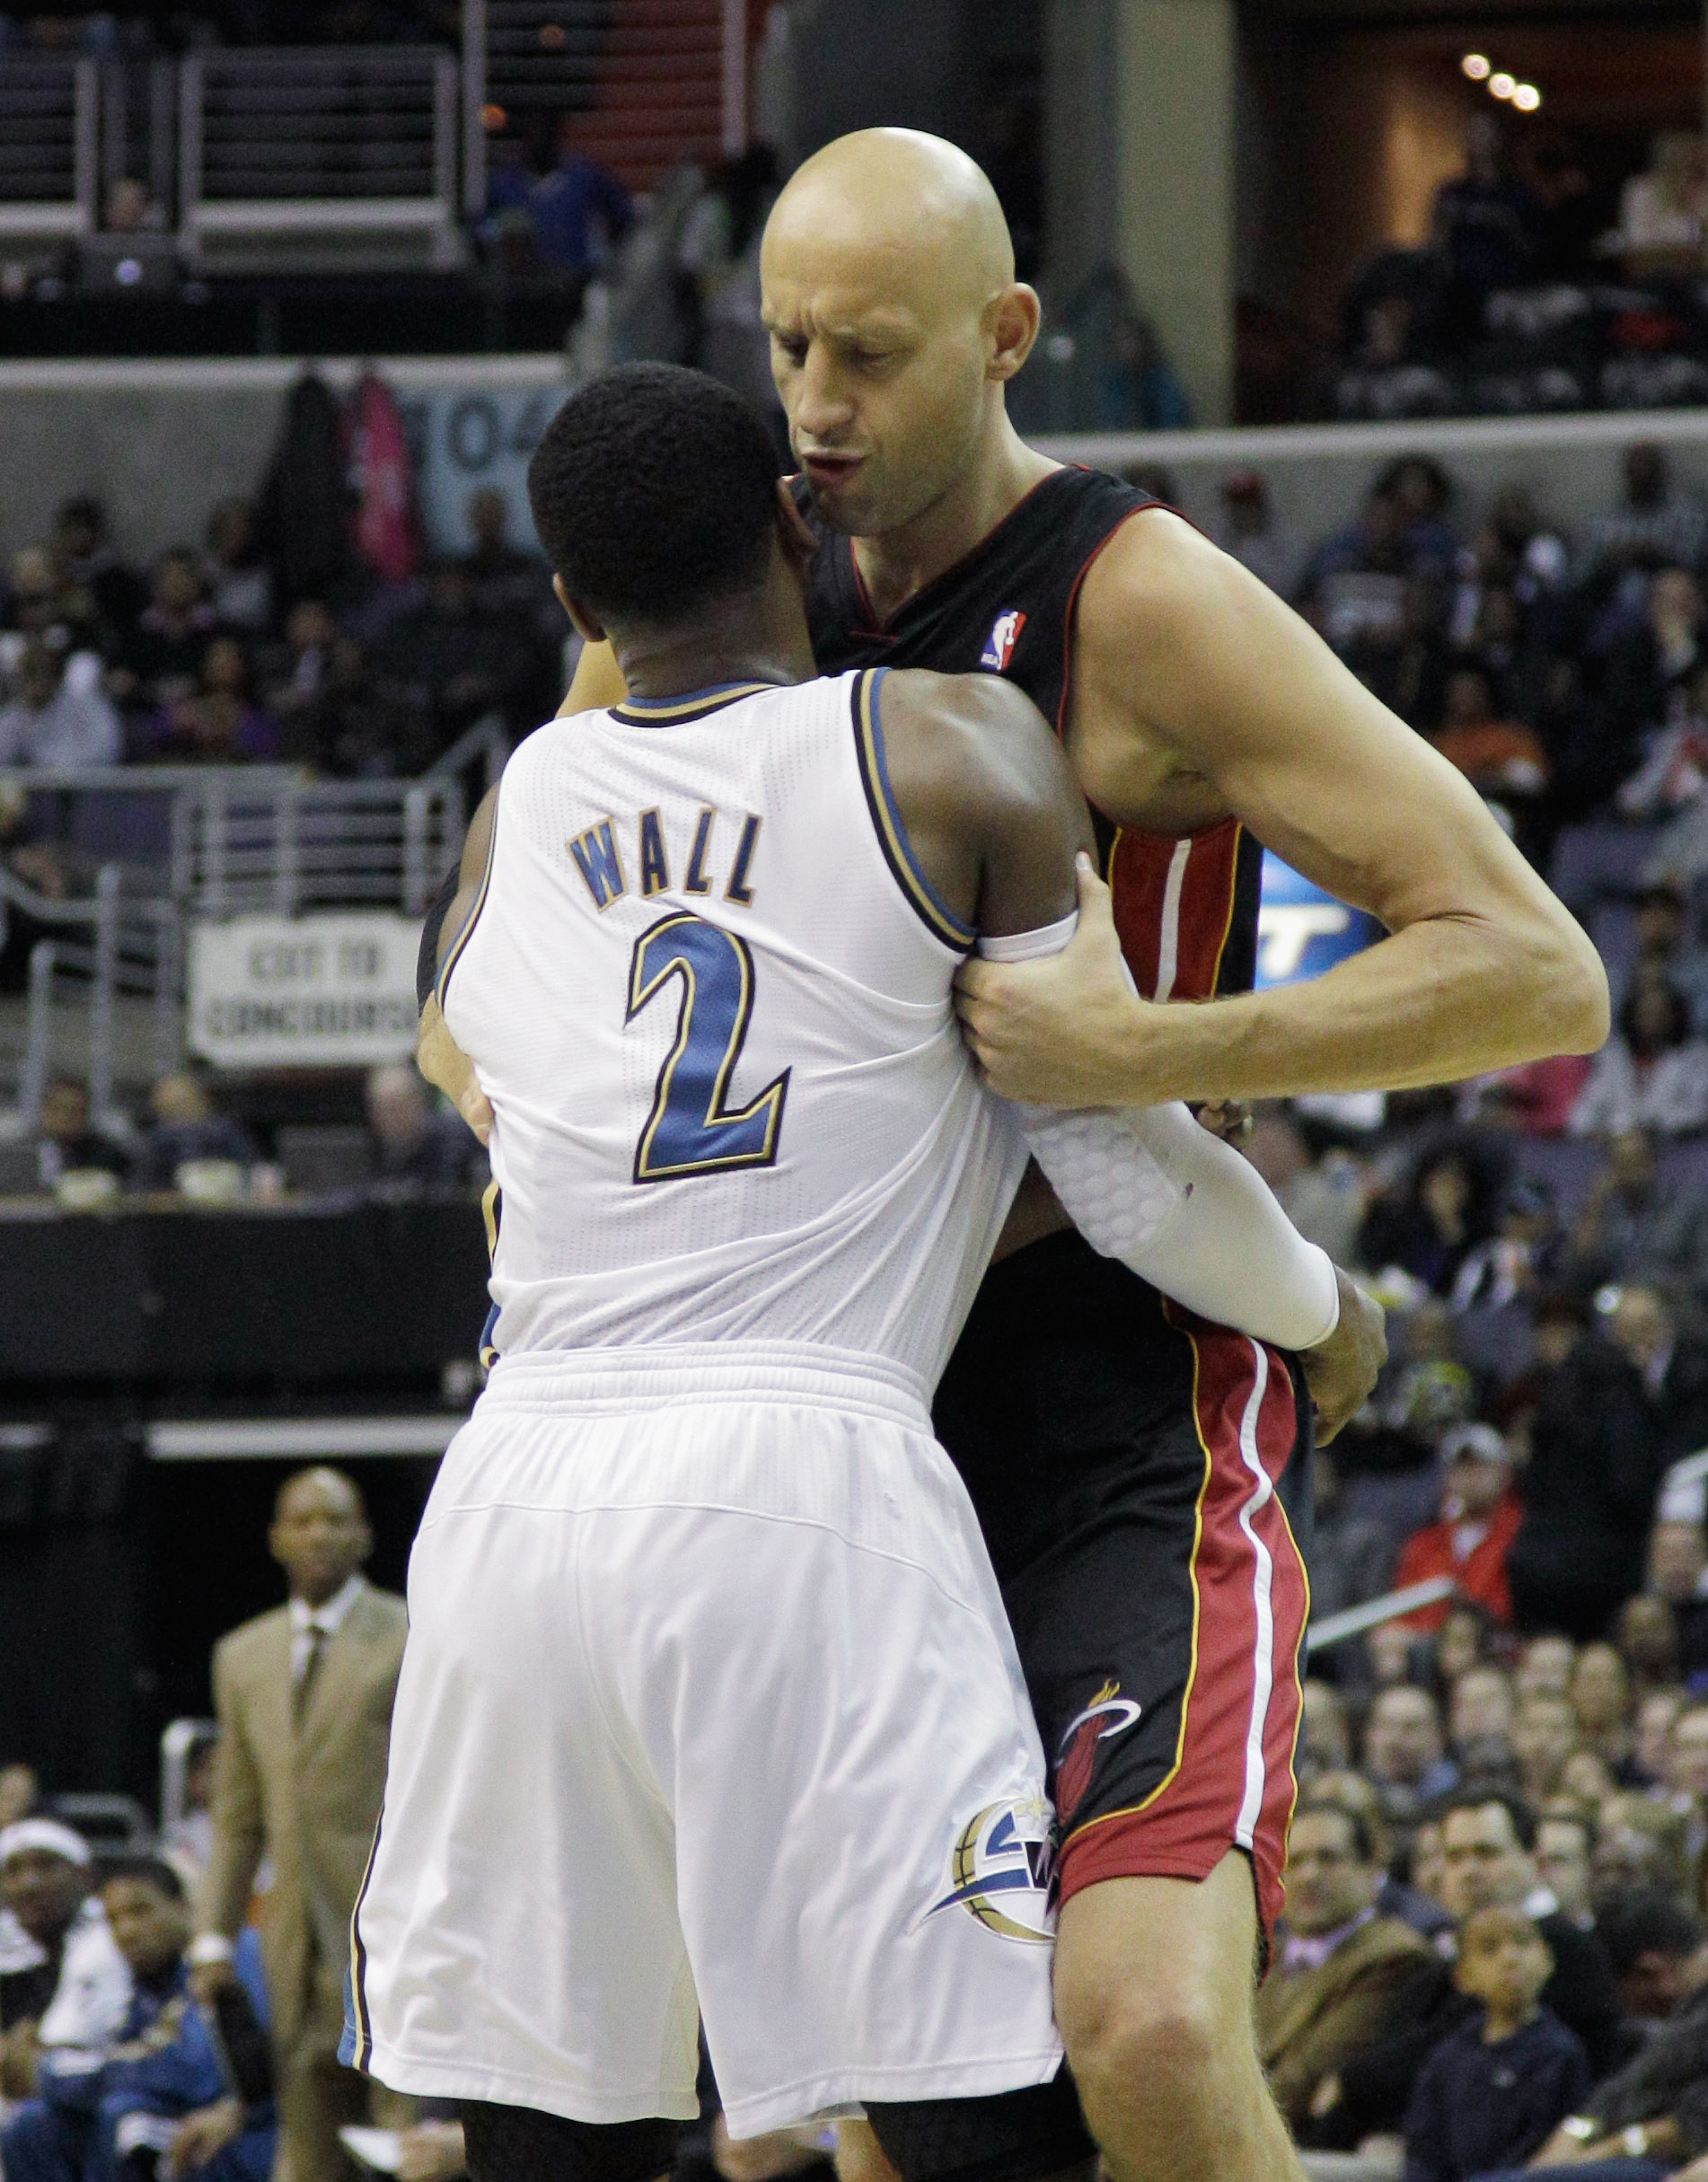 WASHINGTON, DC - MARCH 30:  John Wall #2 of the Washington Wizards and Zydrunas Ilgauskas #11 of the Miami Heat exchange words at the Verizon Center on March 30, 2011 in Washington, DC. NOTE TO USER: User expressly acknowledges and agrees that, by downloa